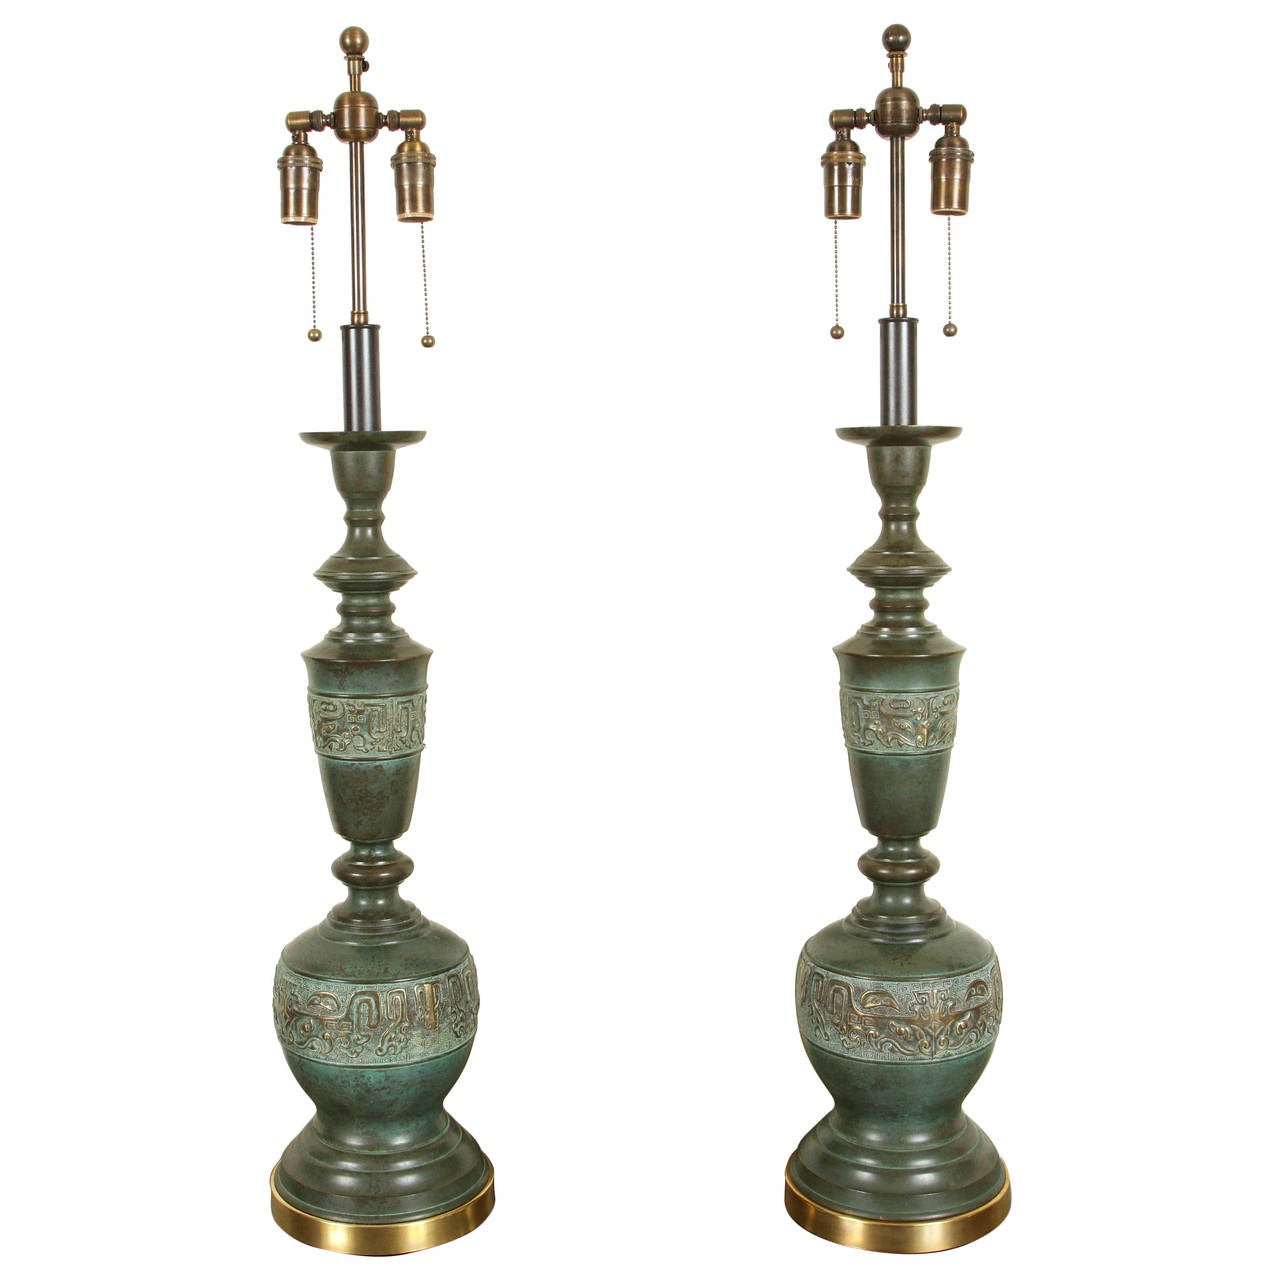 Pair Of Metal Table Lamps With A Verdigris Bronze Finish By Marbro 1